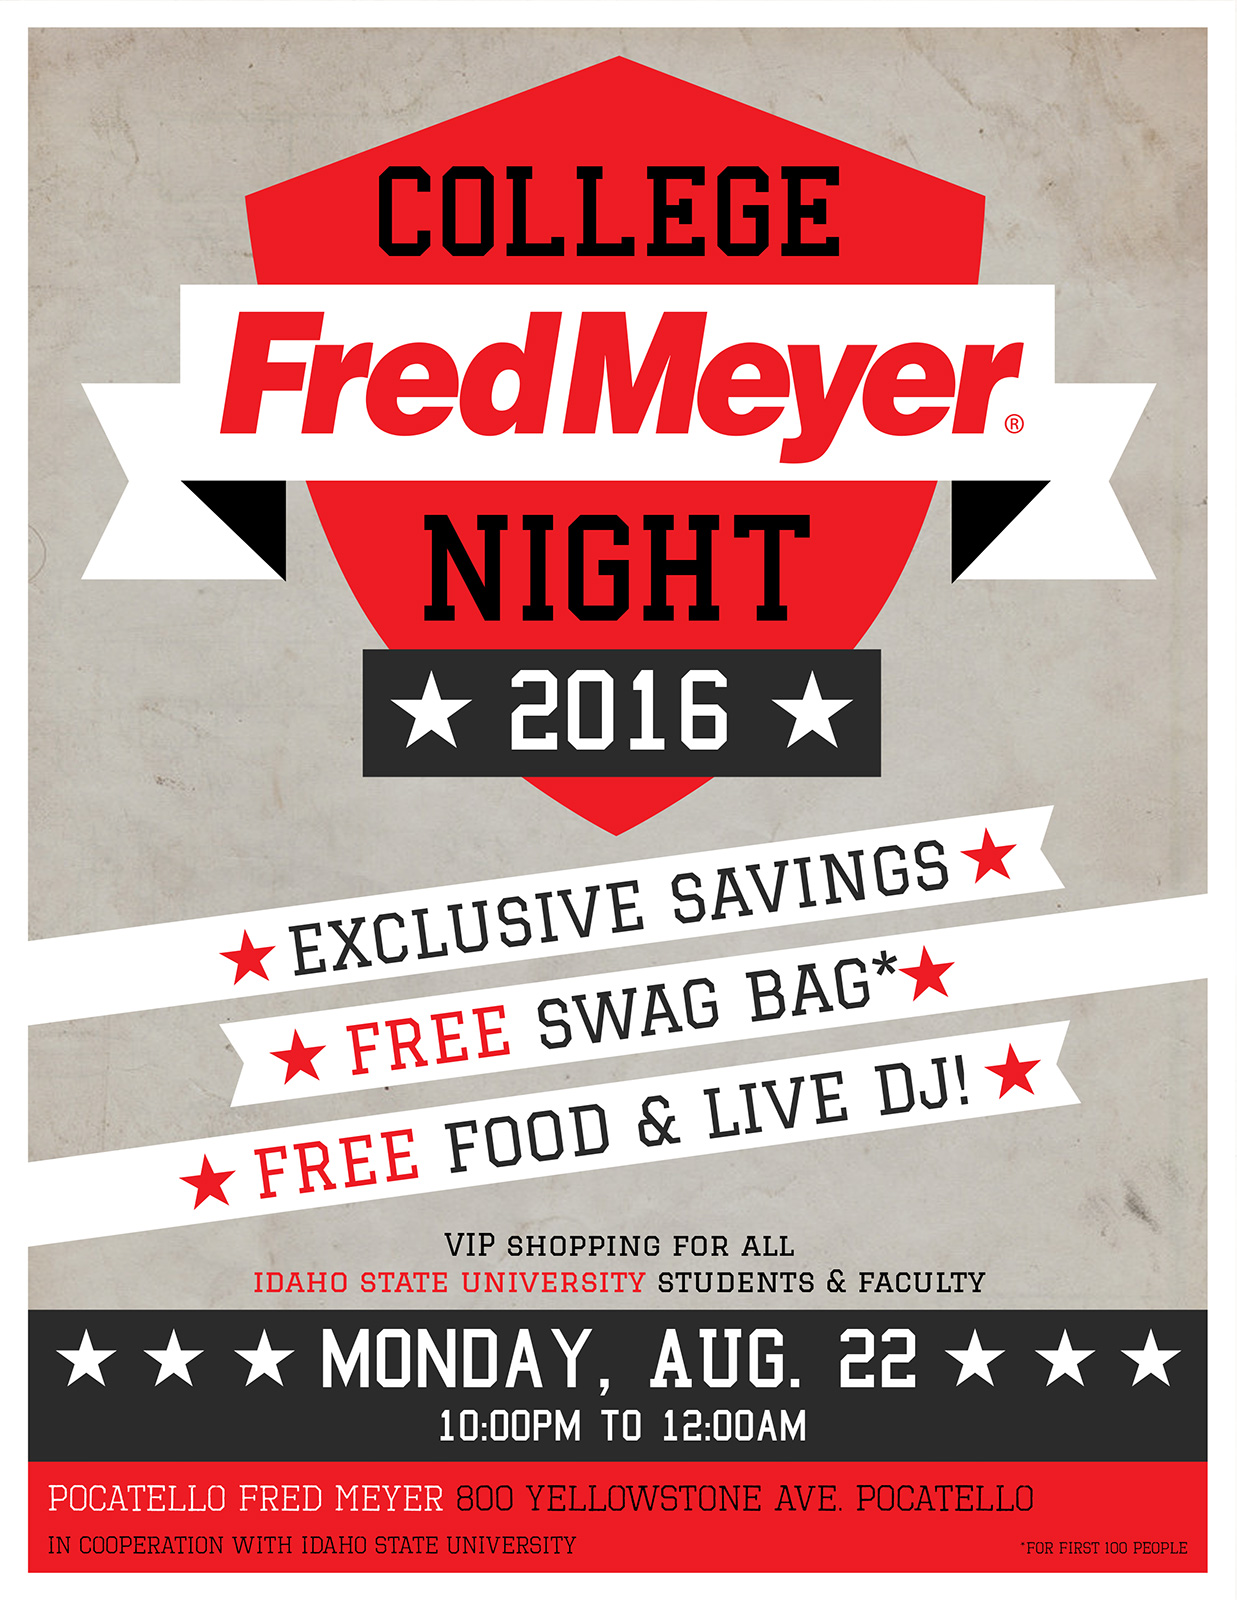 Fred Meyer College Night Campaign